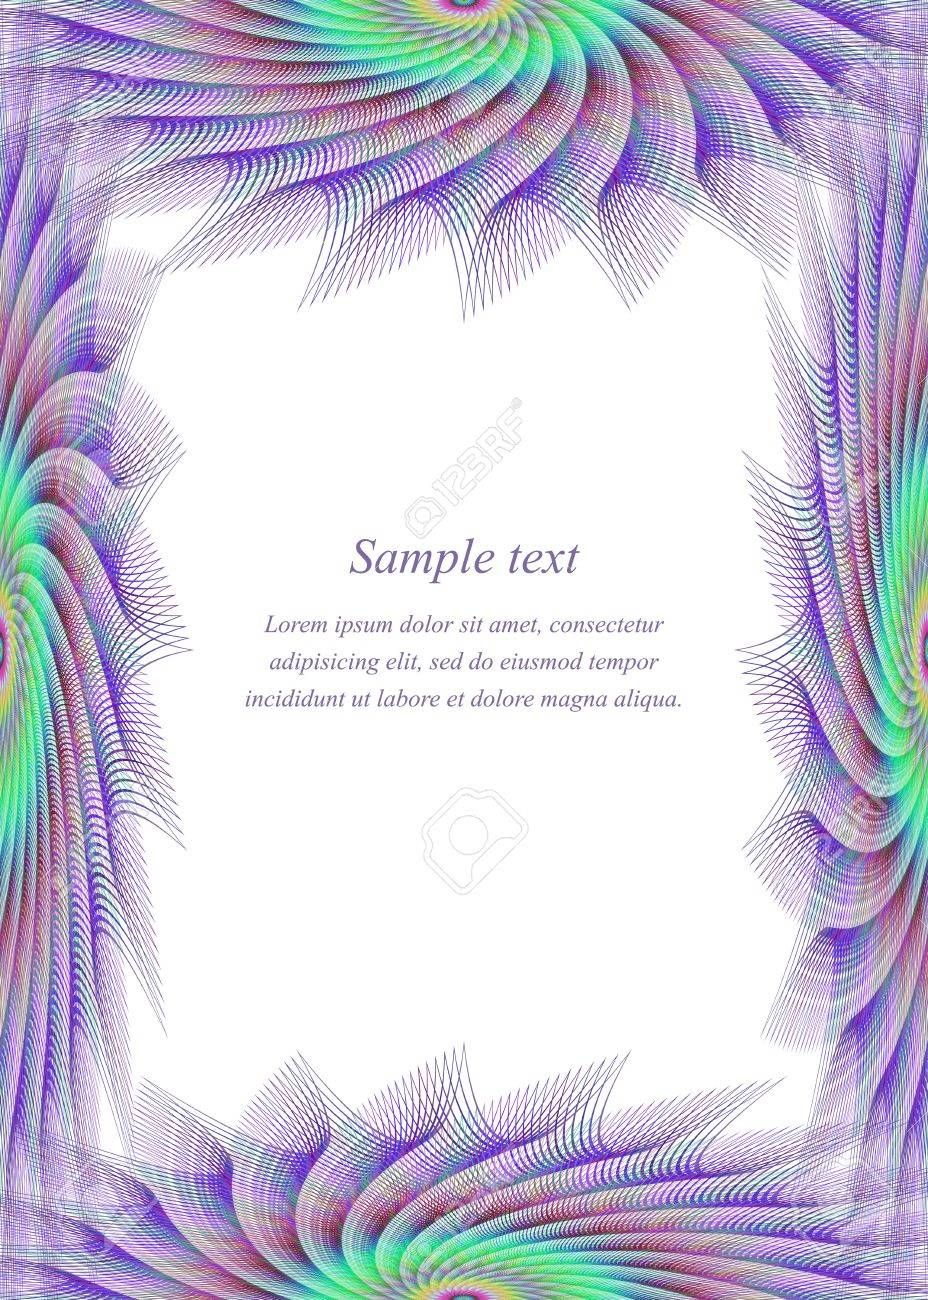 Colored Fractal Ornament Page Border Design Template Royalty Free Cliparts Vectors And Stock Illustration Image 47388365